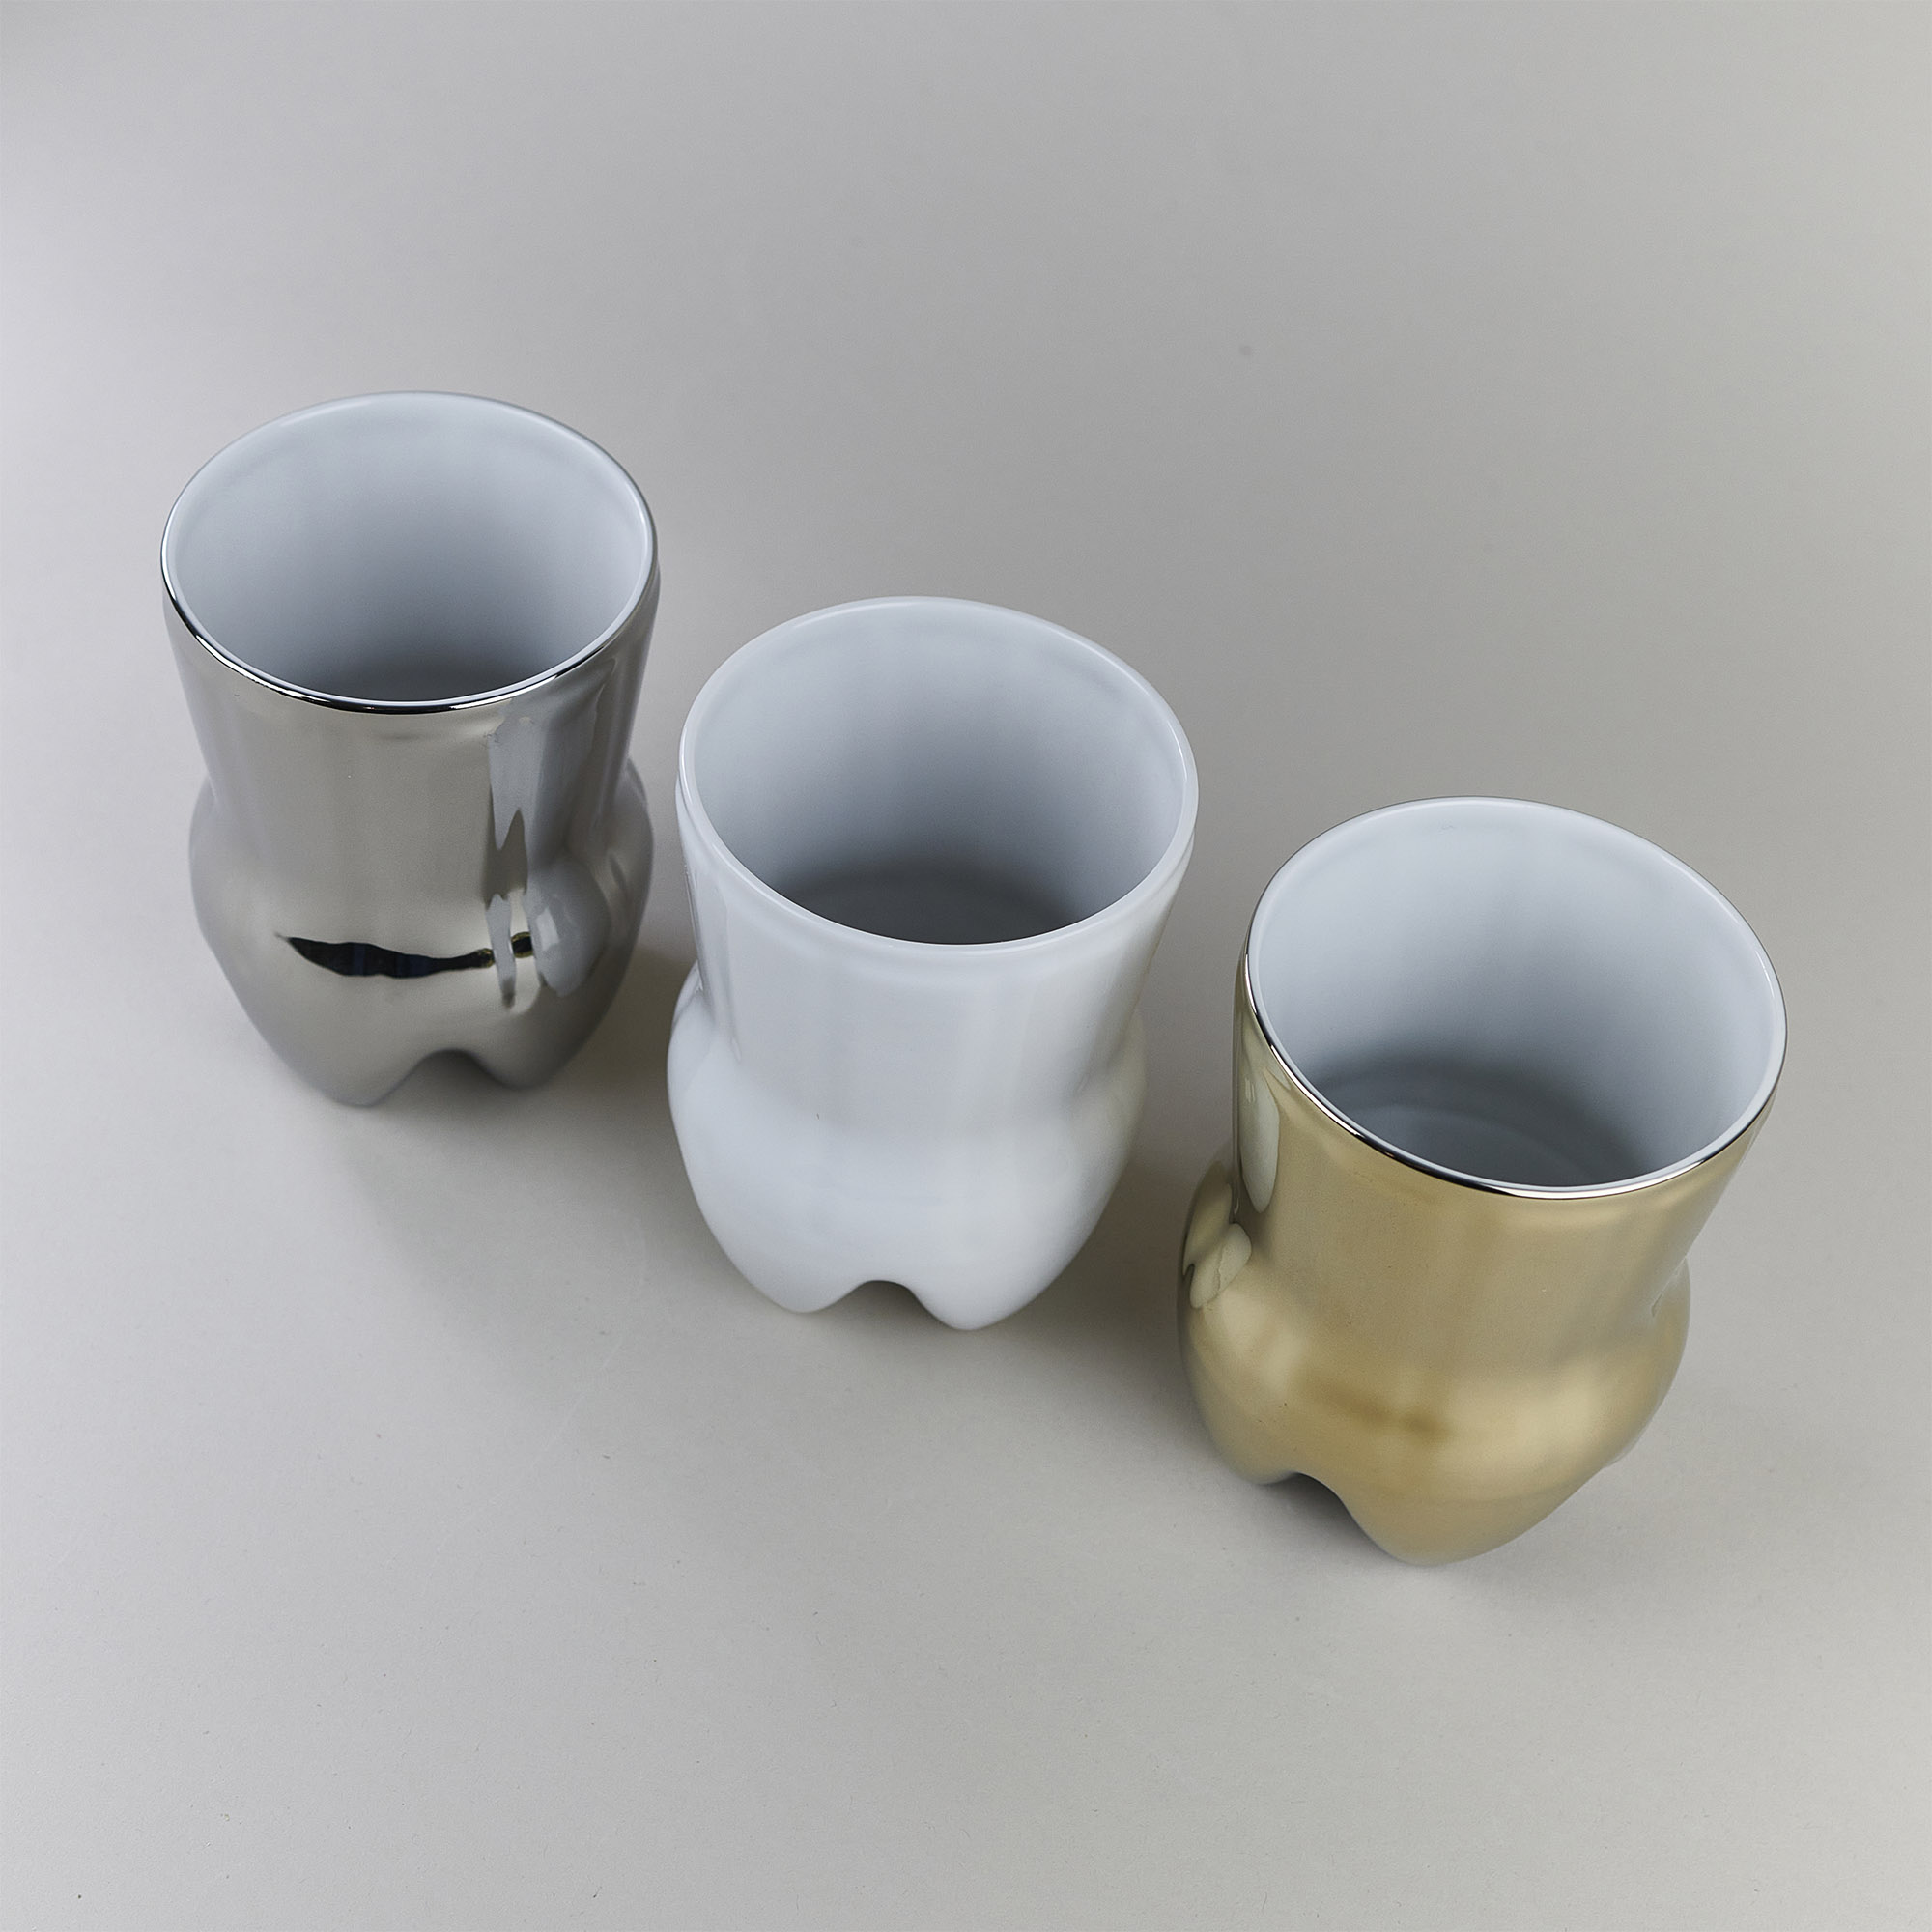 Three porcelain cups in gold, silver and white colours in a shape of Cola bottle by Qubus design studio